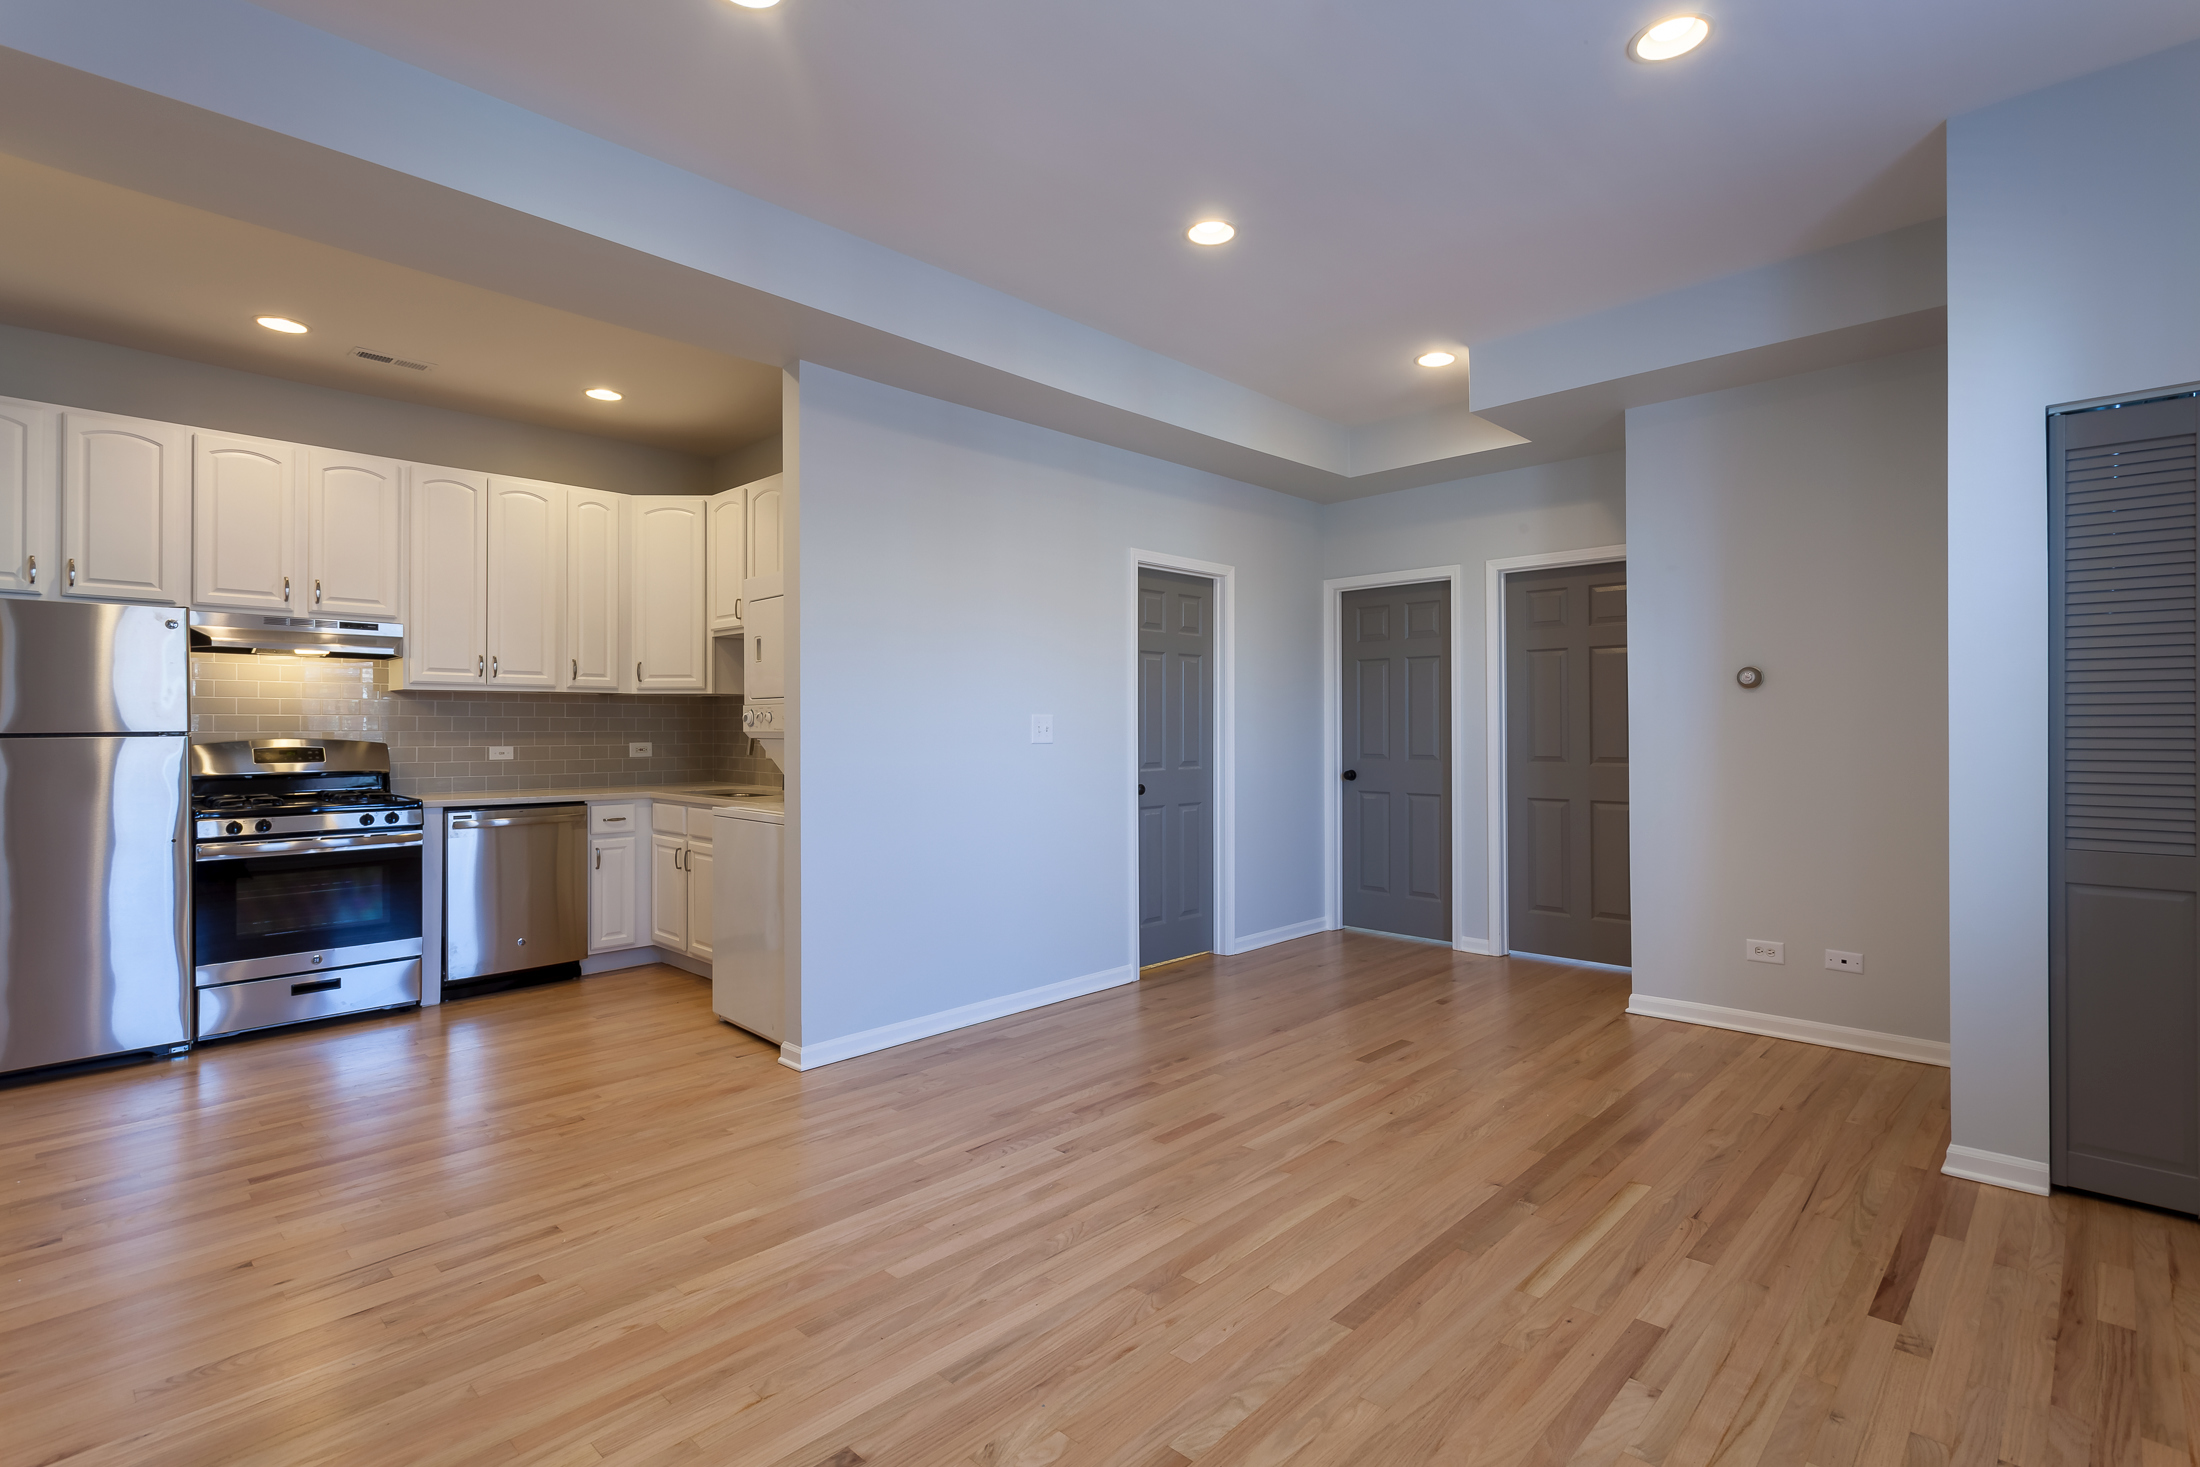 Lincoln Park Rental - Construction Cost: $17,000Construction Time: 3 Weeks